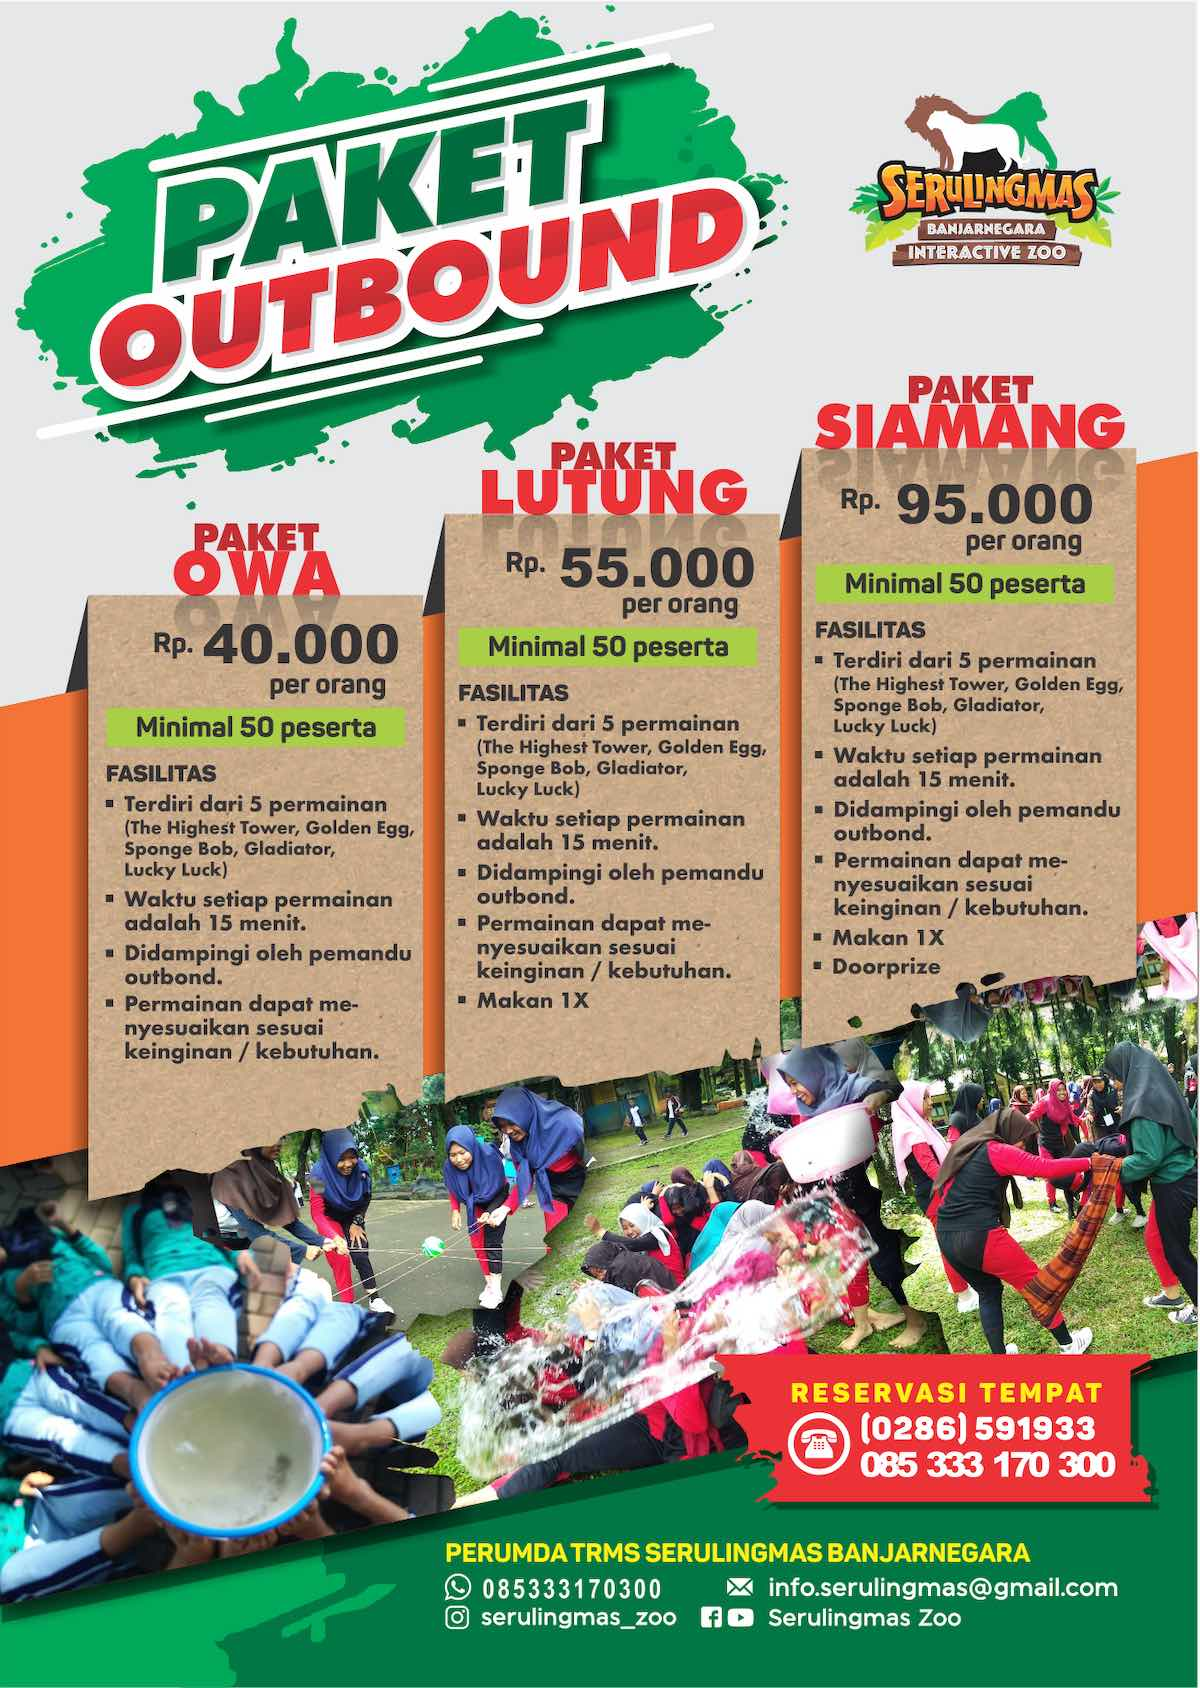 PAKET outbound SERULINGMAS